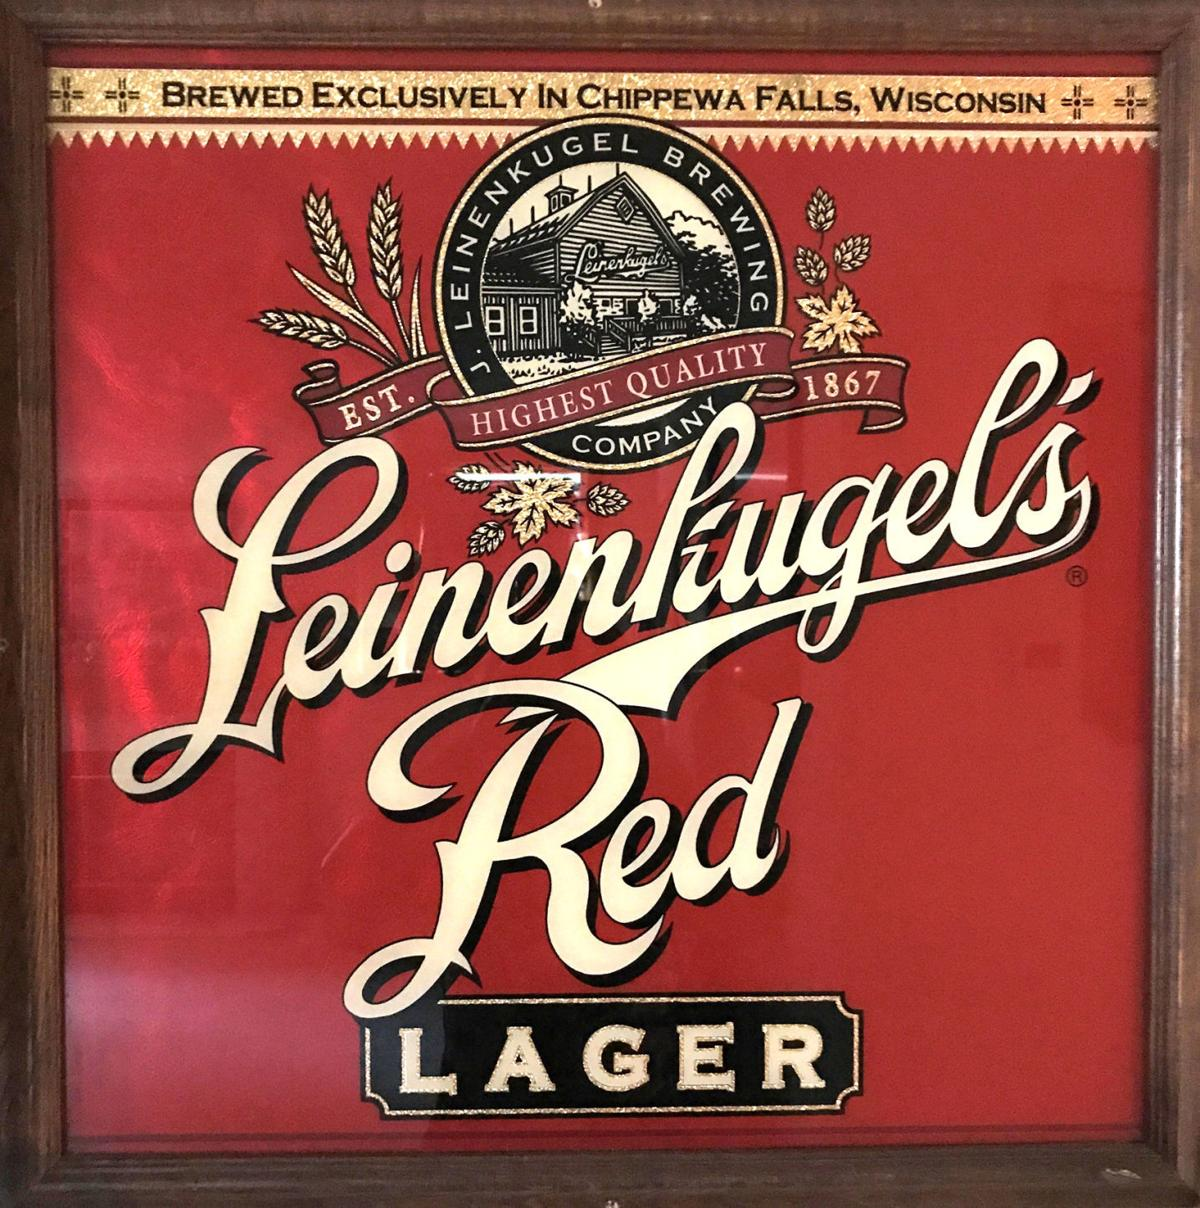 44ebde31430 Leinenkugel's at 150: A history in words and pictures | Local | chippewa.com